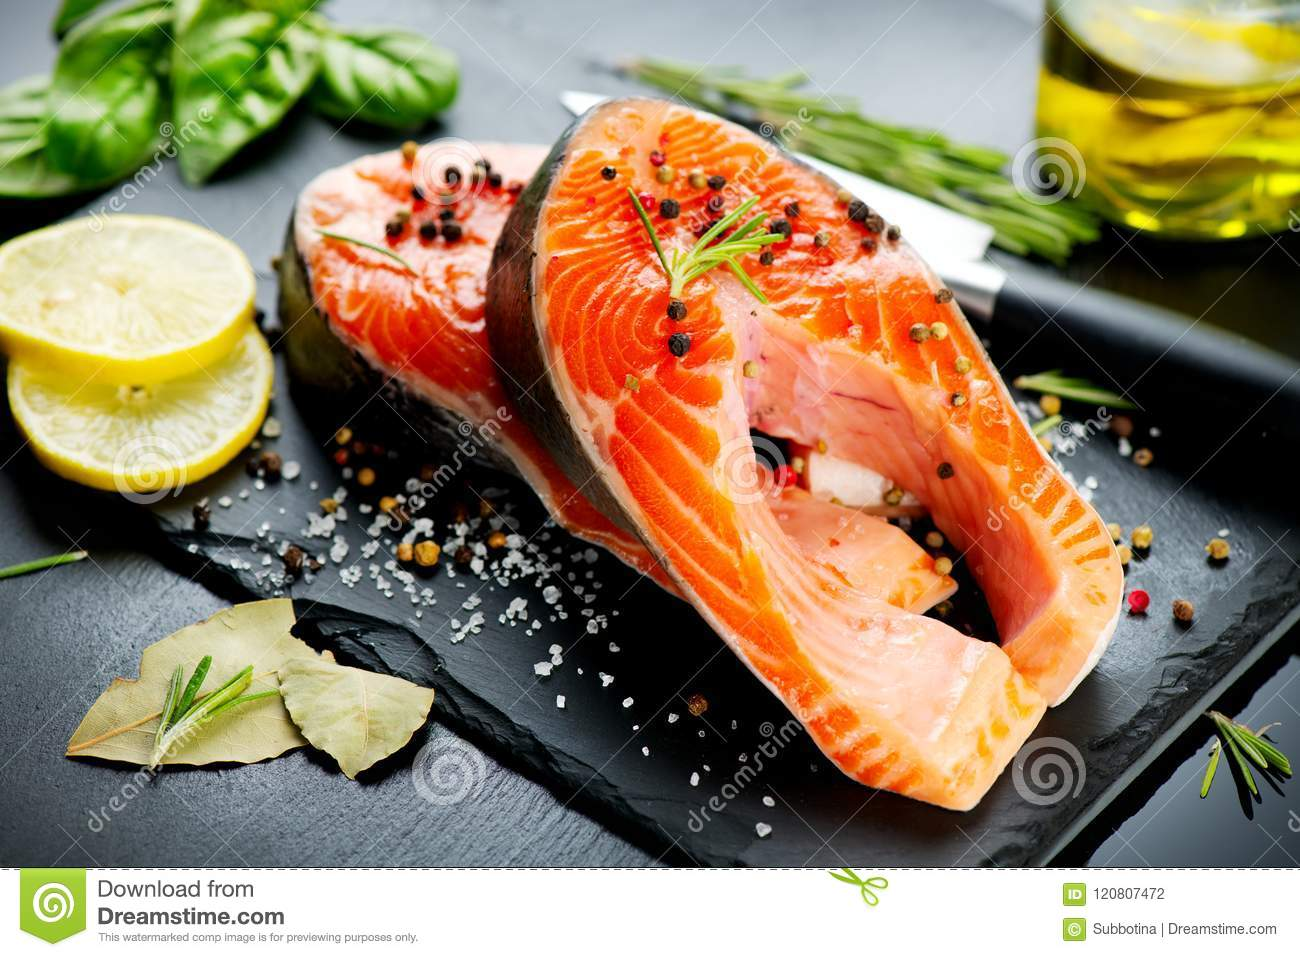 Salmon Raw Trout Fish Steak With Herbs And Lemon On Black Slate